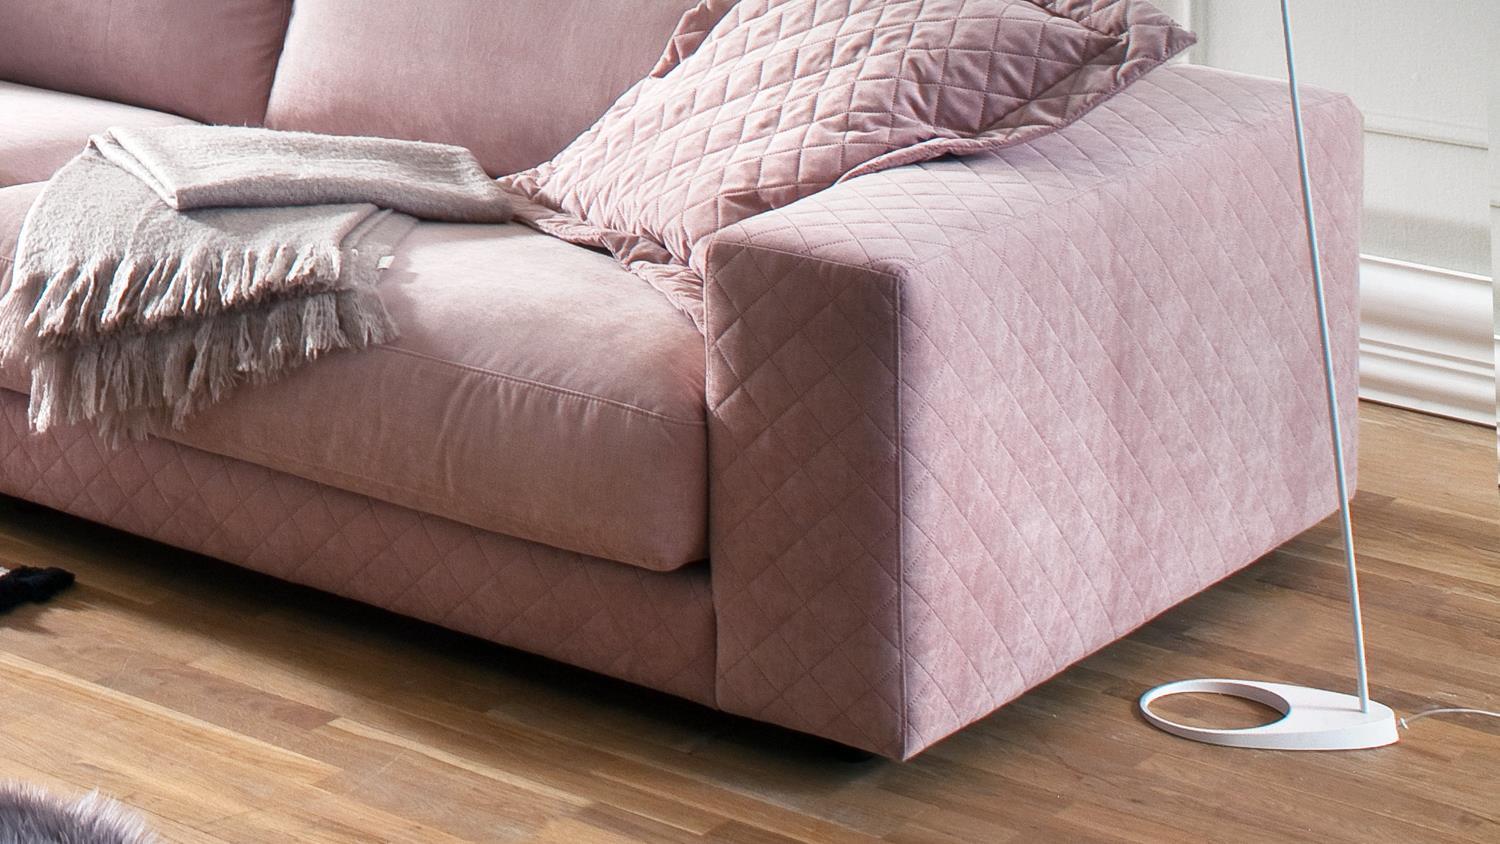 Big Sofa 290 Cm Big Sofa High Loft Megasofa Loungesofa In Stoff Rosa 290